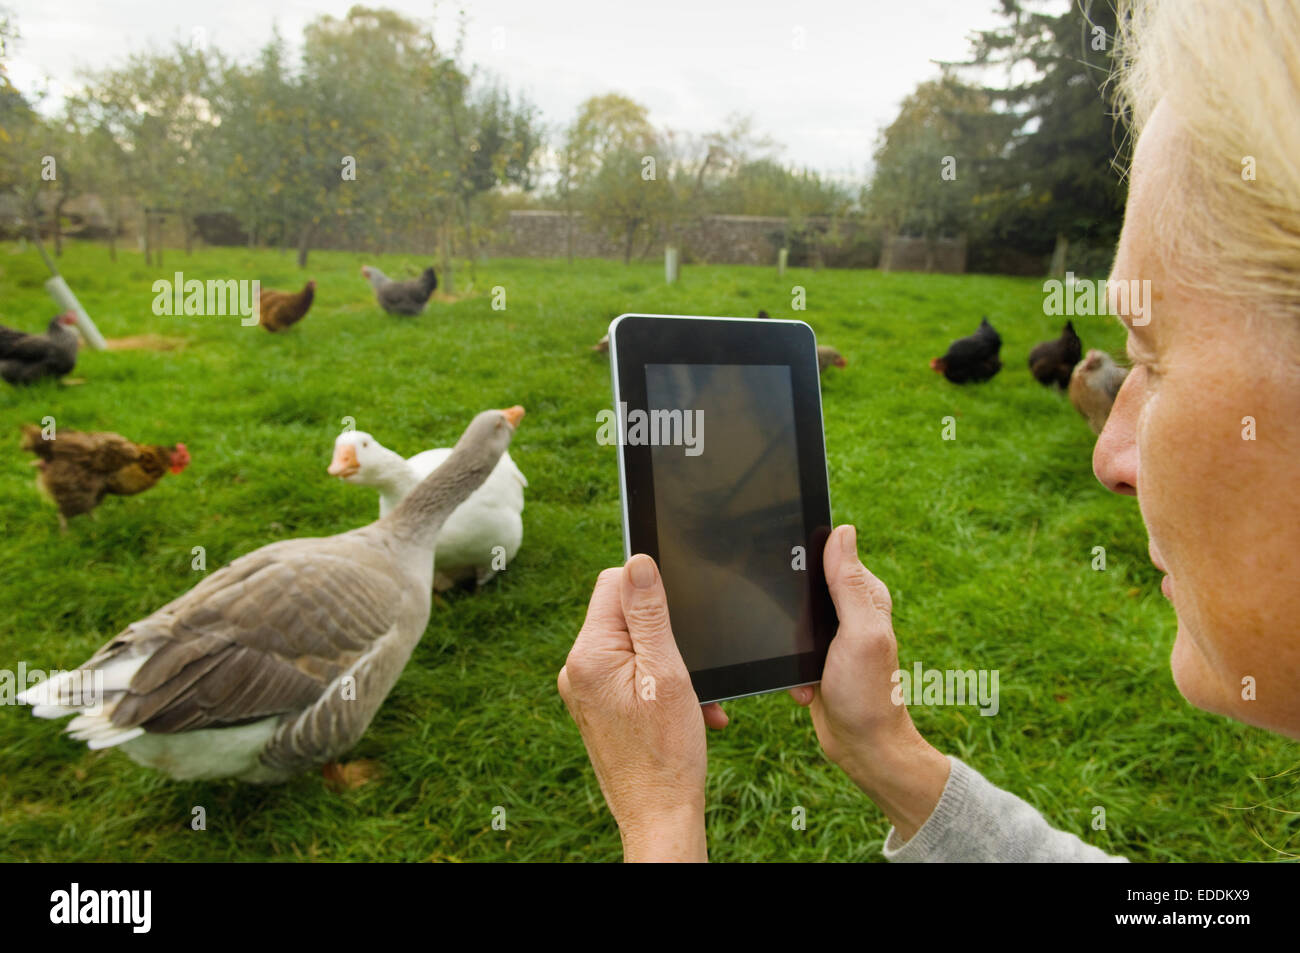 Woman holding a digital tablet, taking a photograph of geese and chicken in her chicken run. - Stock Image